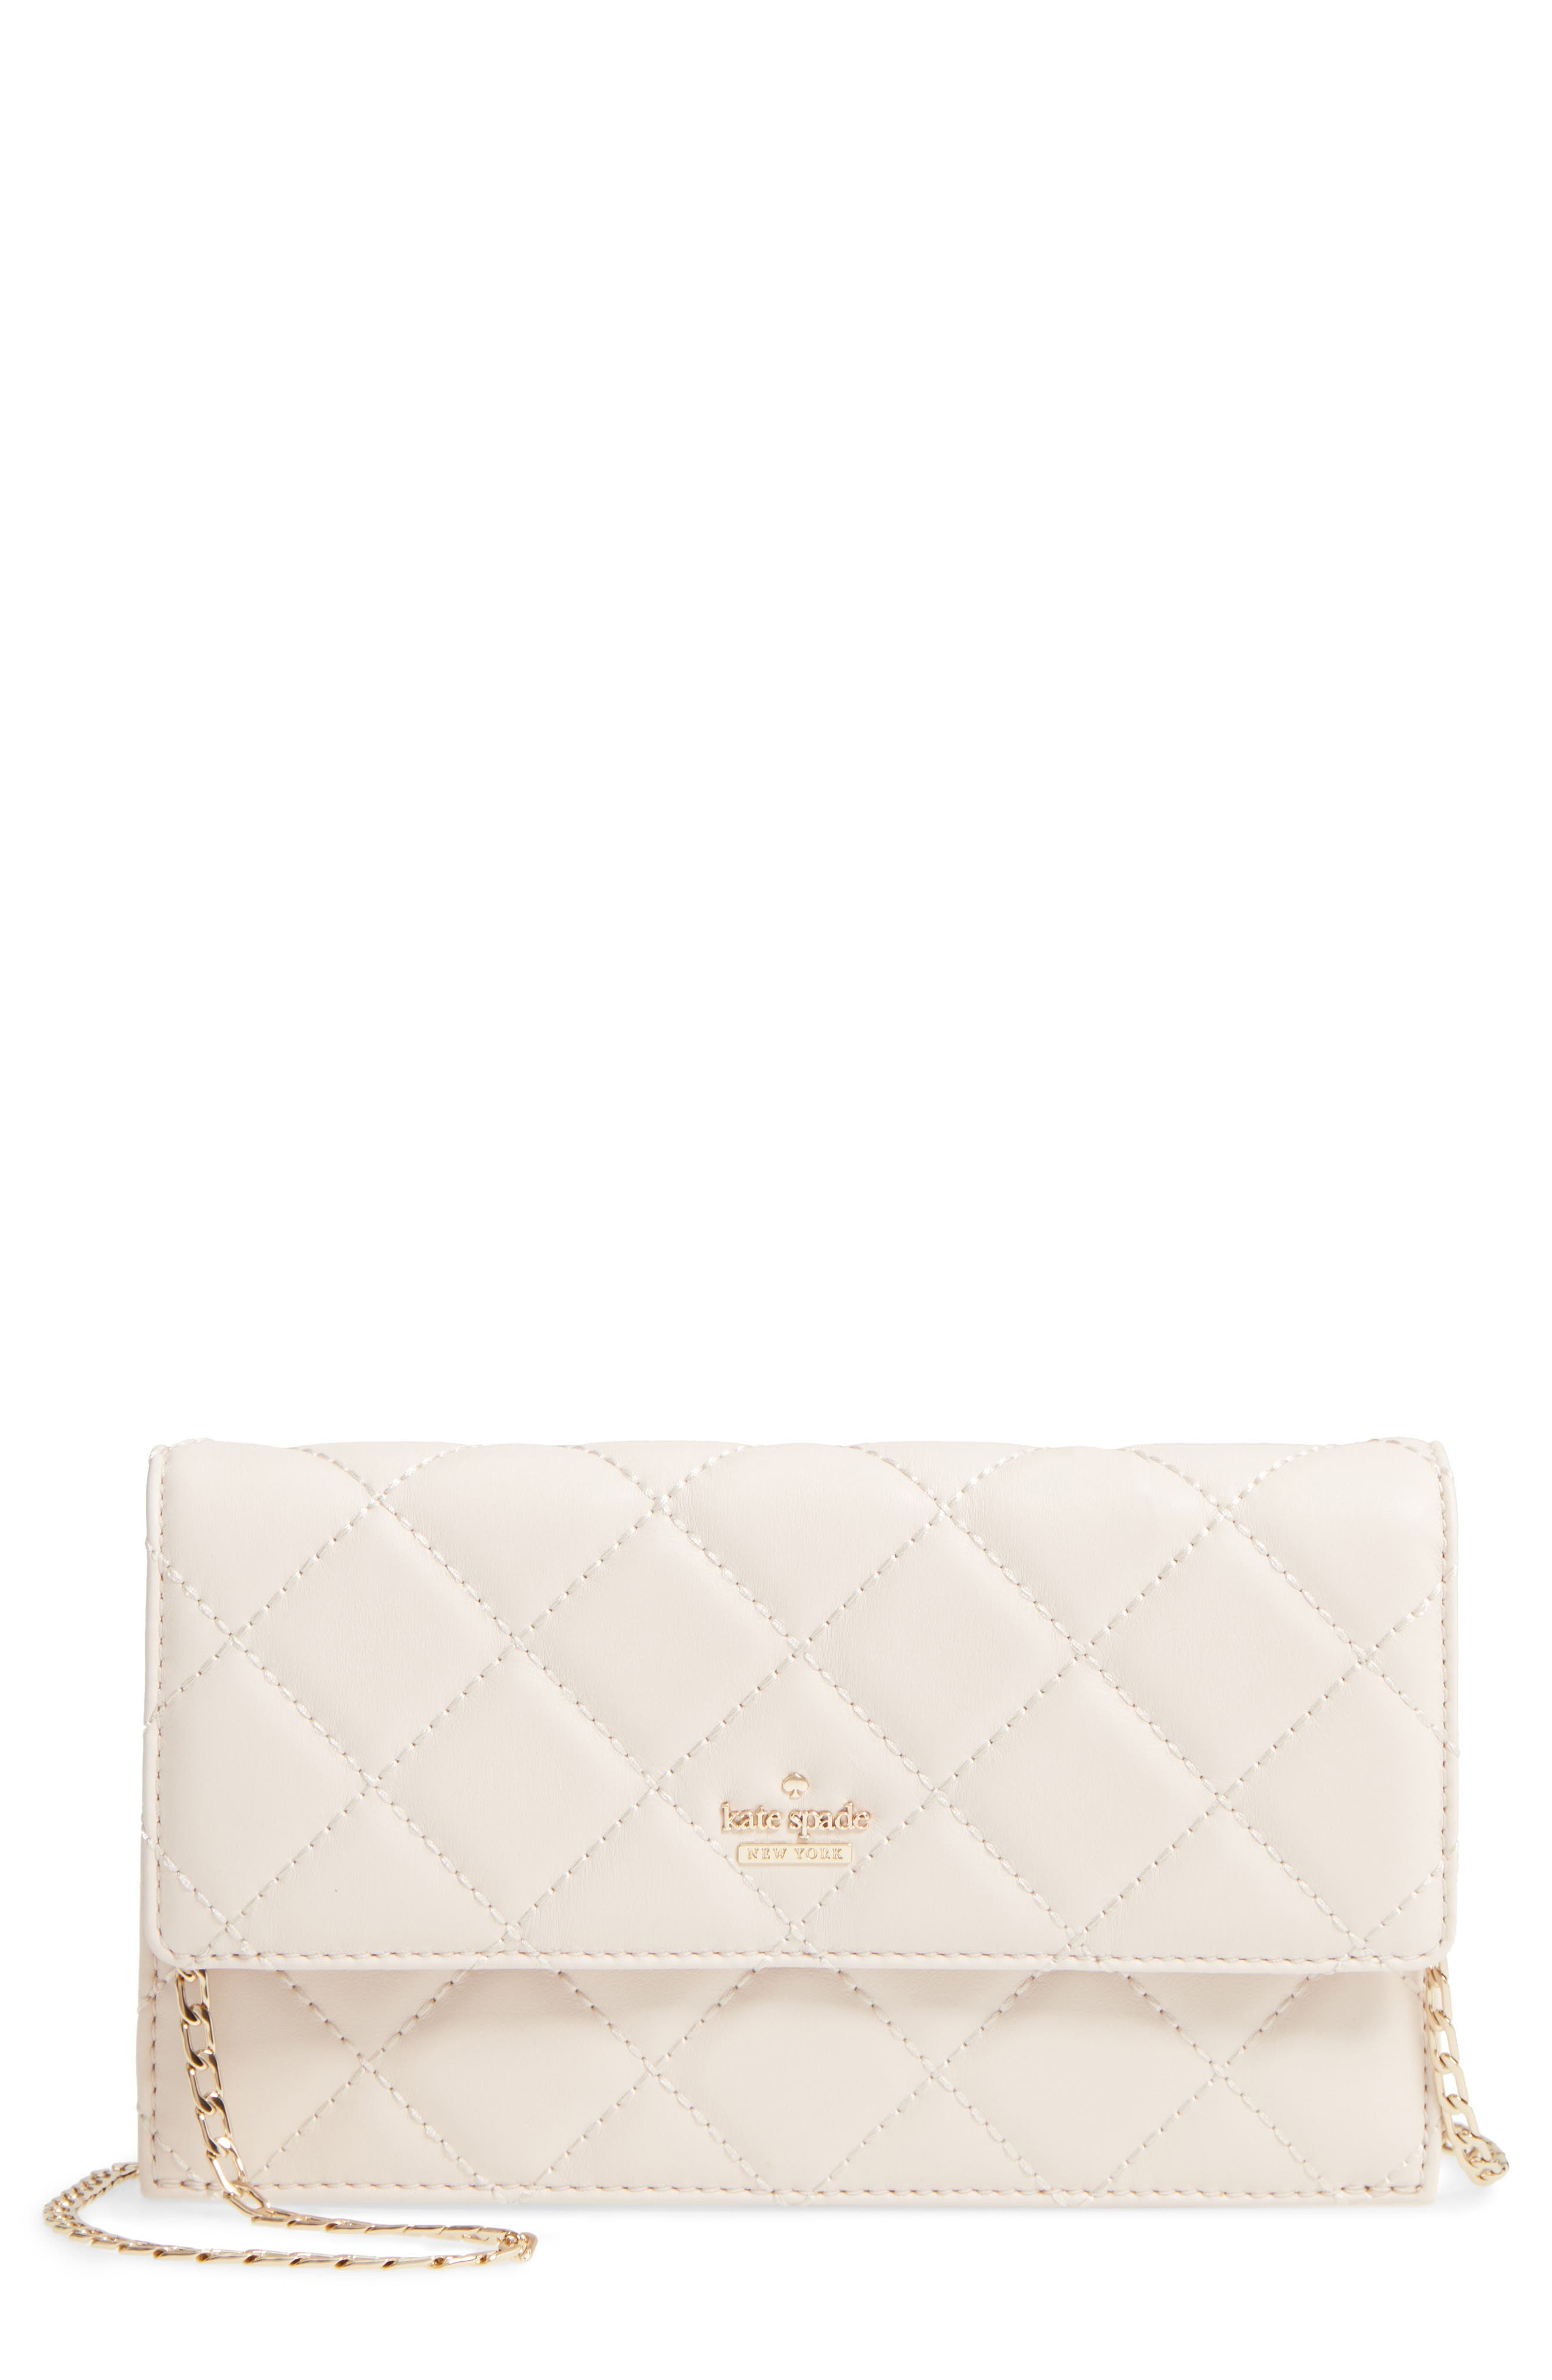 emerson place - brennan quilted leather,                         Main,                         color, Bleach Bone